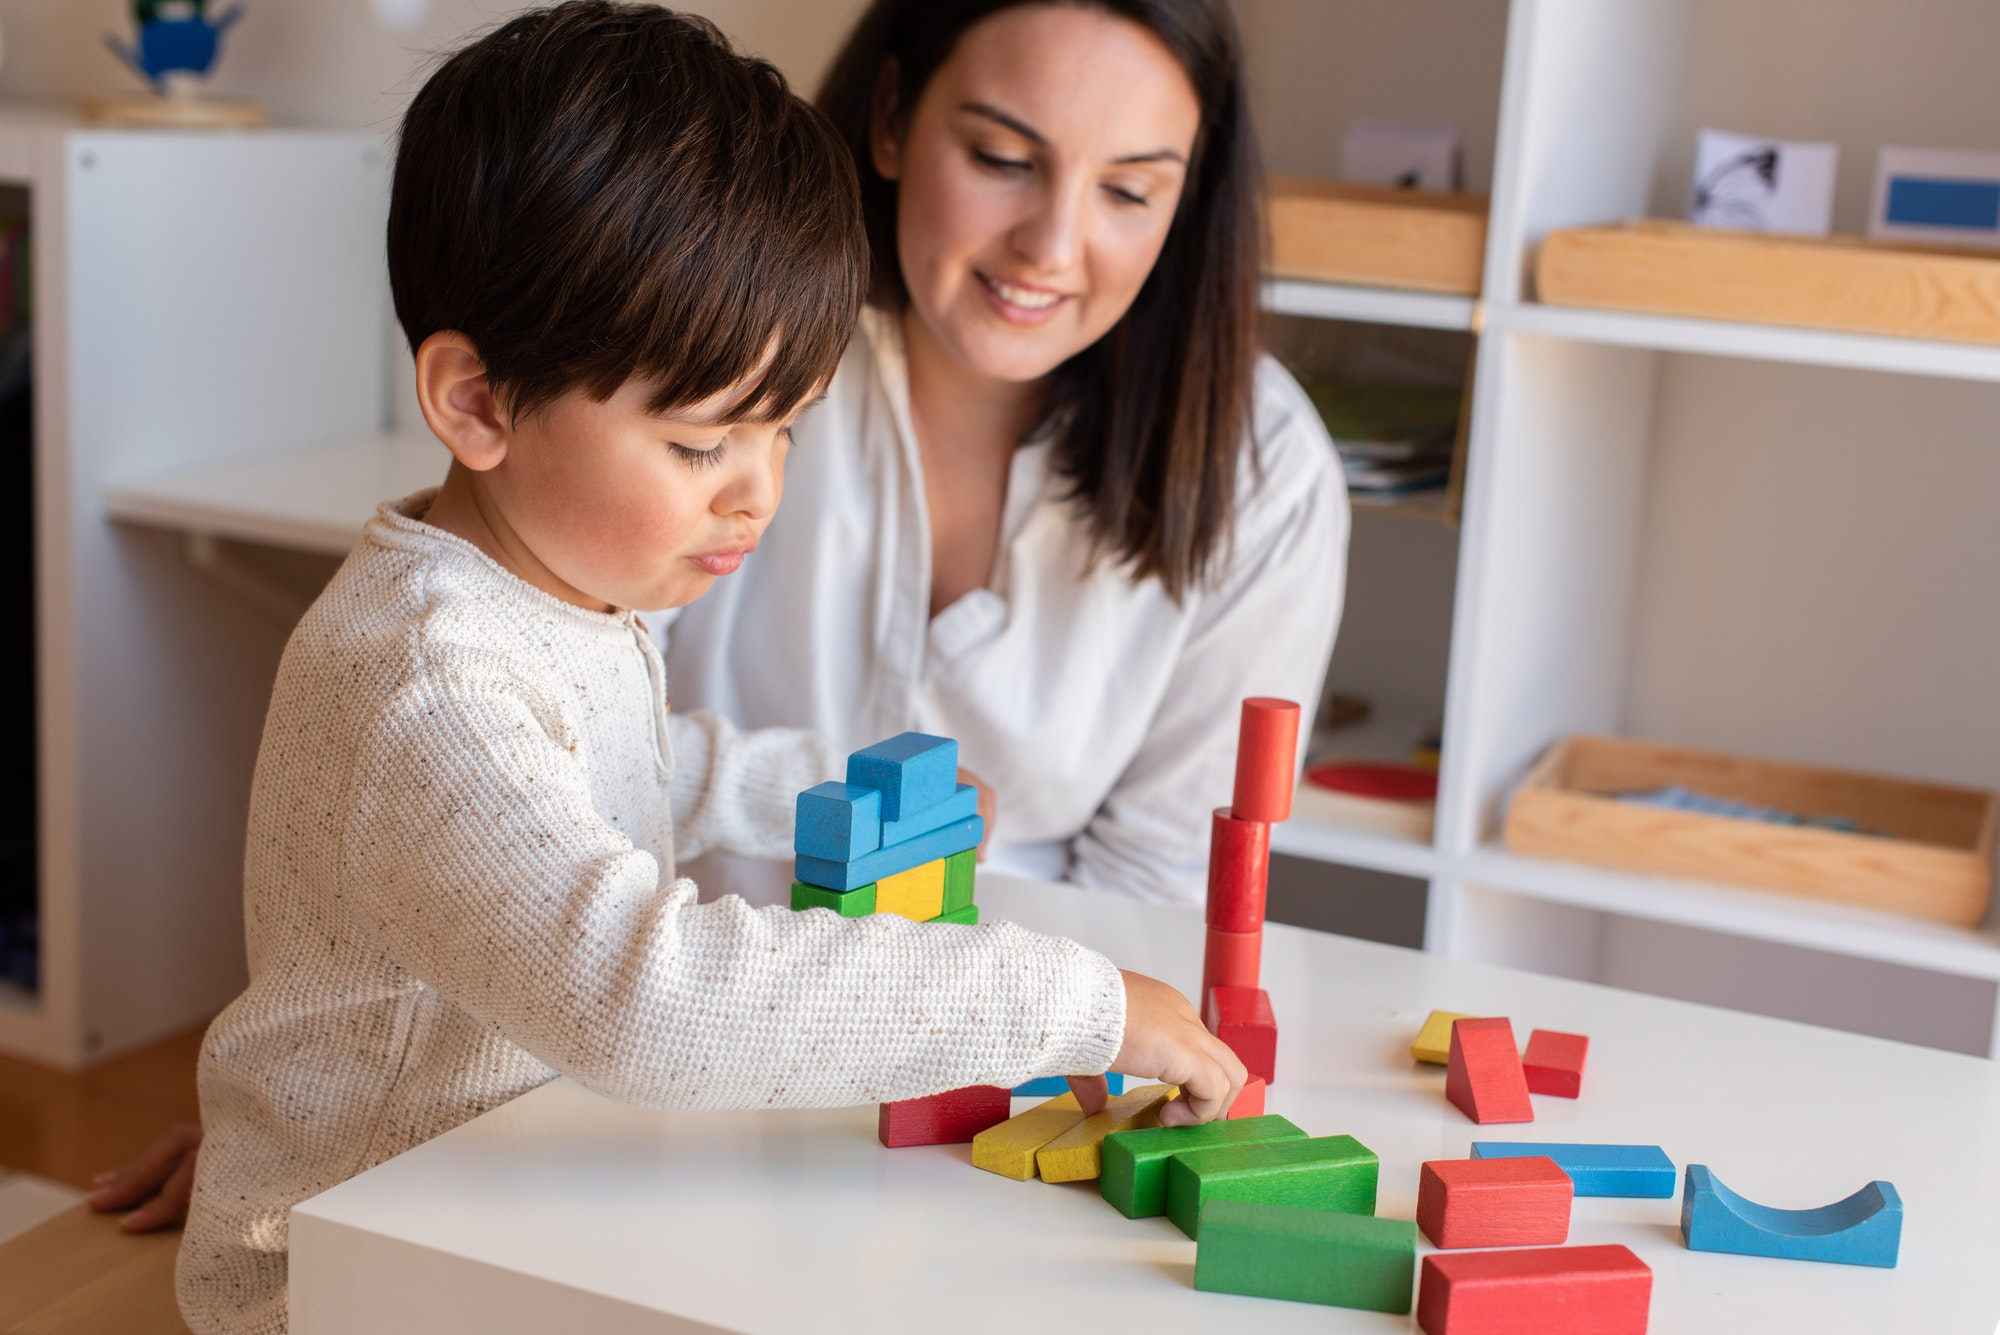 Kid playing with wood blocks and teacher educador help.